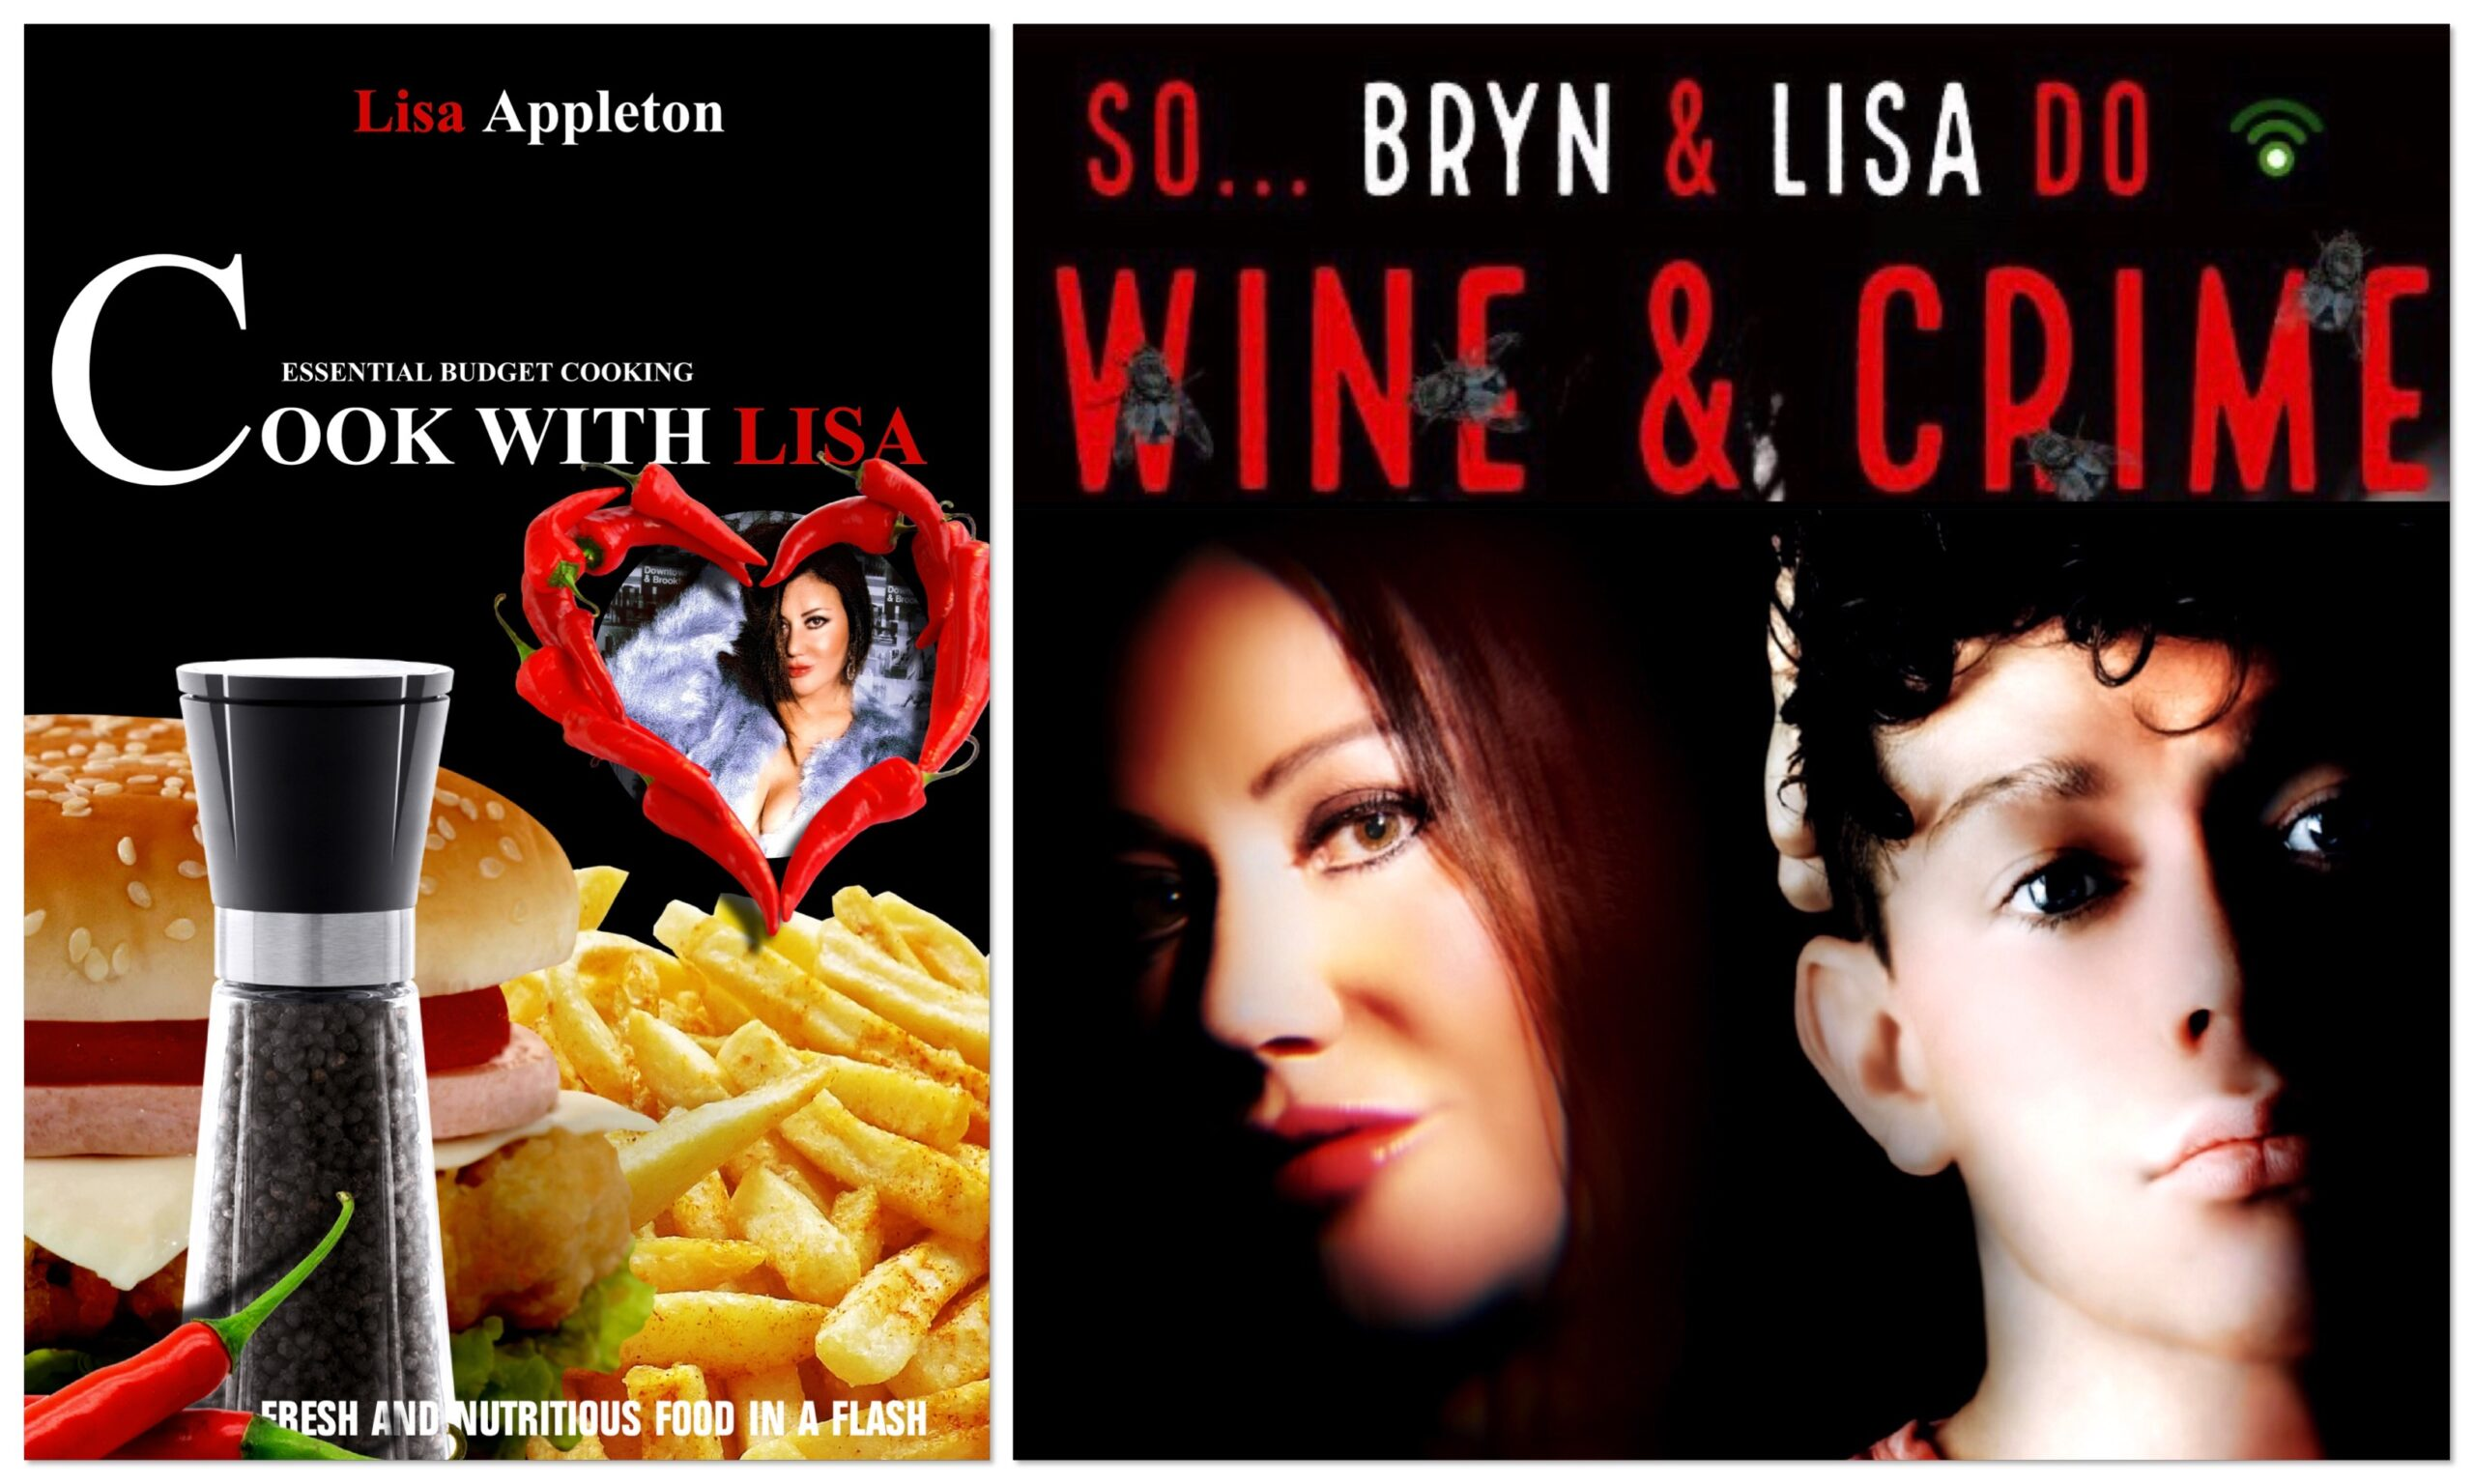 BIG BROTHER 9 REALITY STAR LISA APPLETON TAKES ON FOOD AND MURDER WITH NEW COOKBOOK AND TRUE CRIME PODCAST